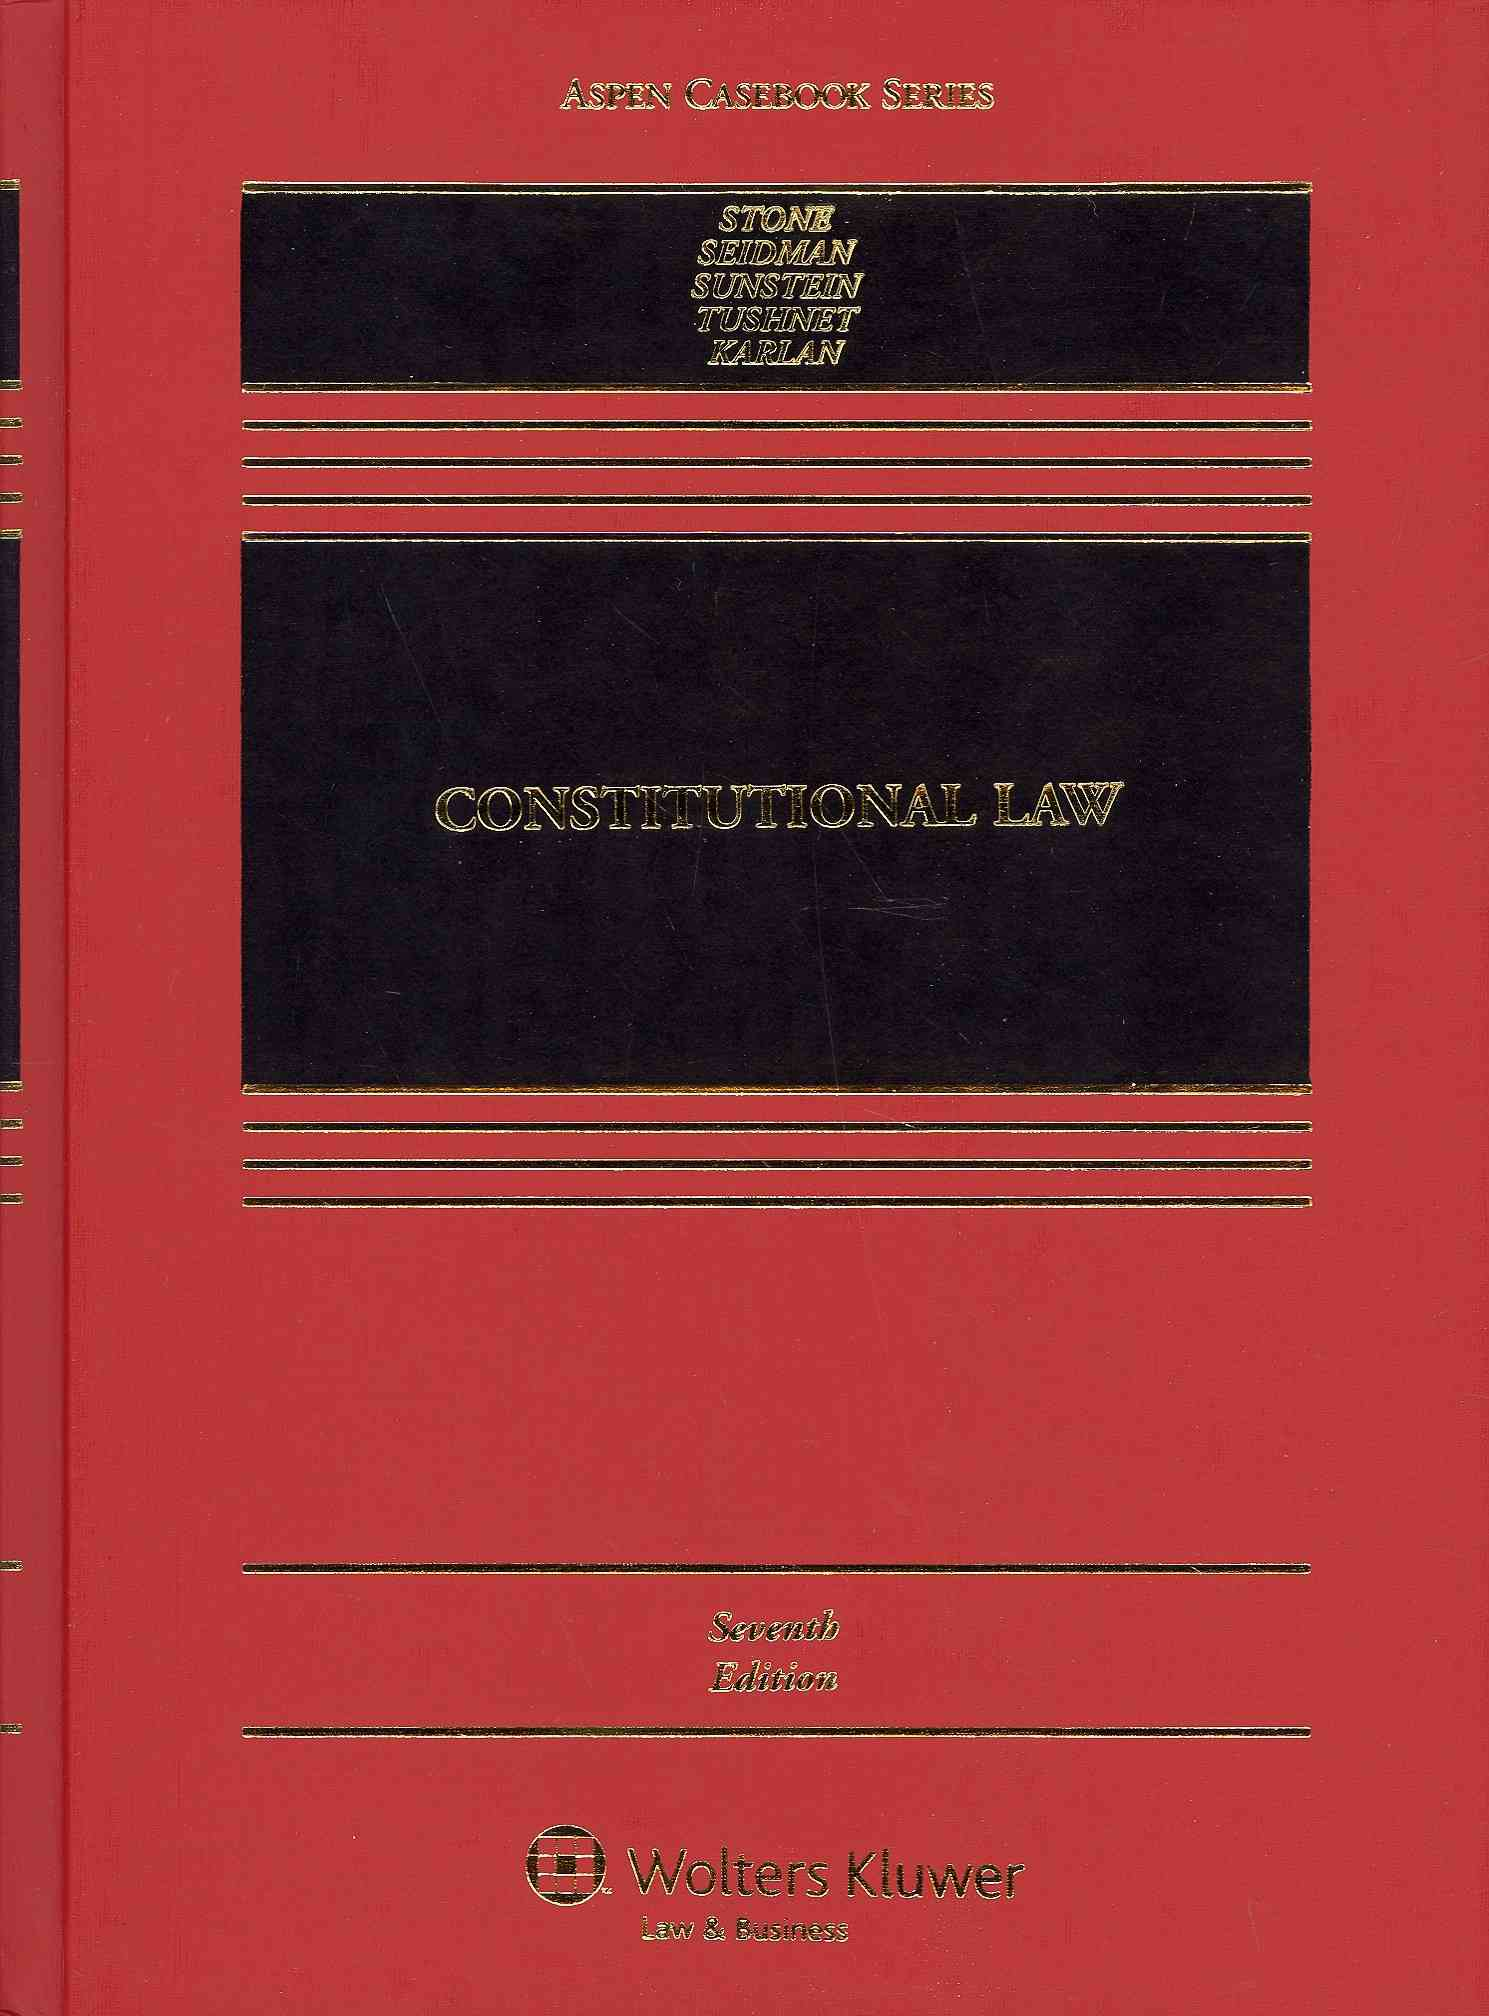 Constitutional Law By Stone, Geoffrey R./ Sunstein, Cass R./ Seidman, Louis M./ Karlan, Pamela S./ Tushnet, Mark V.